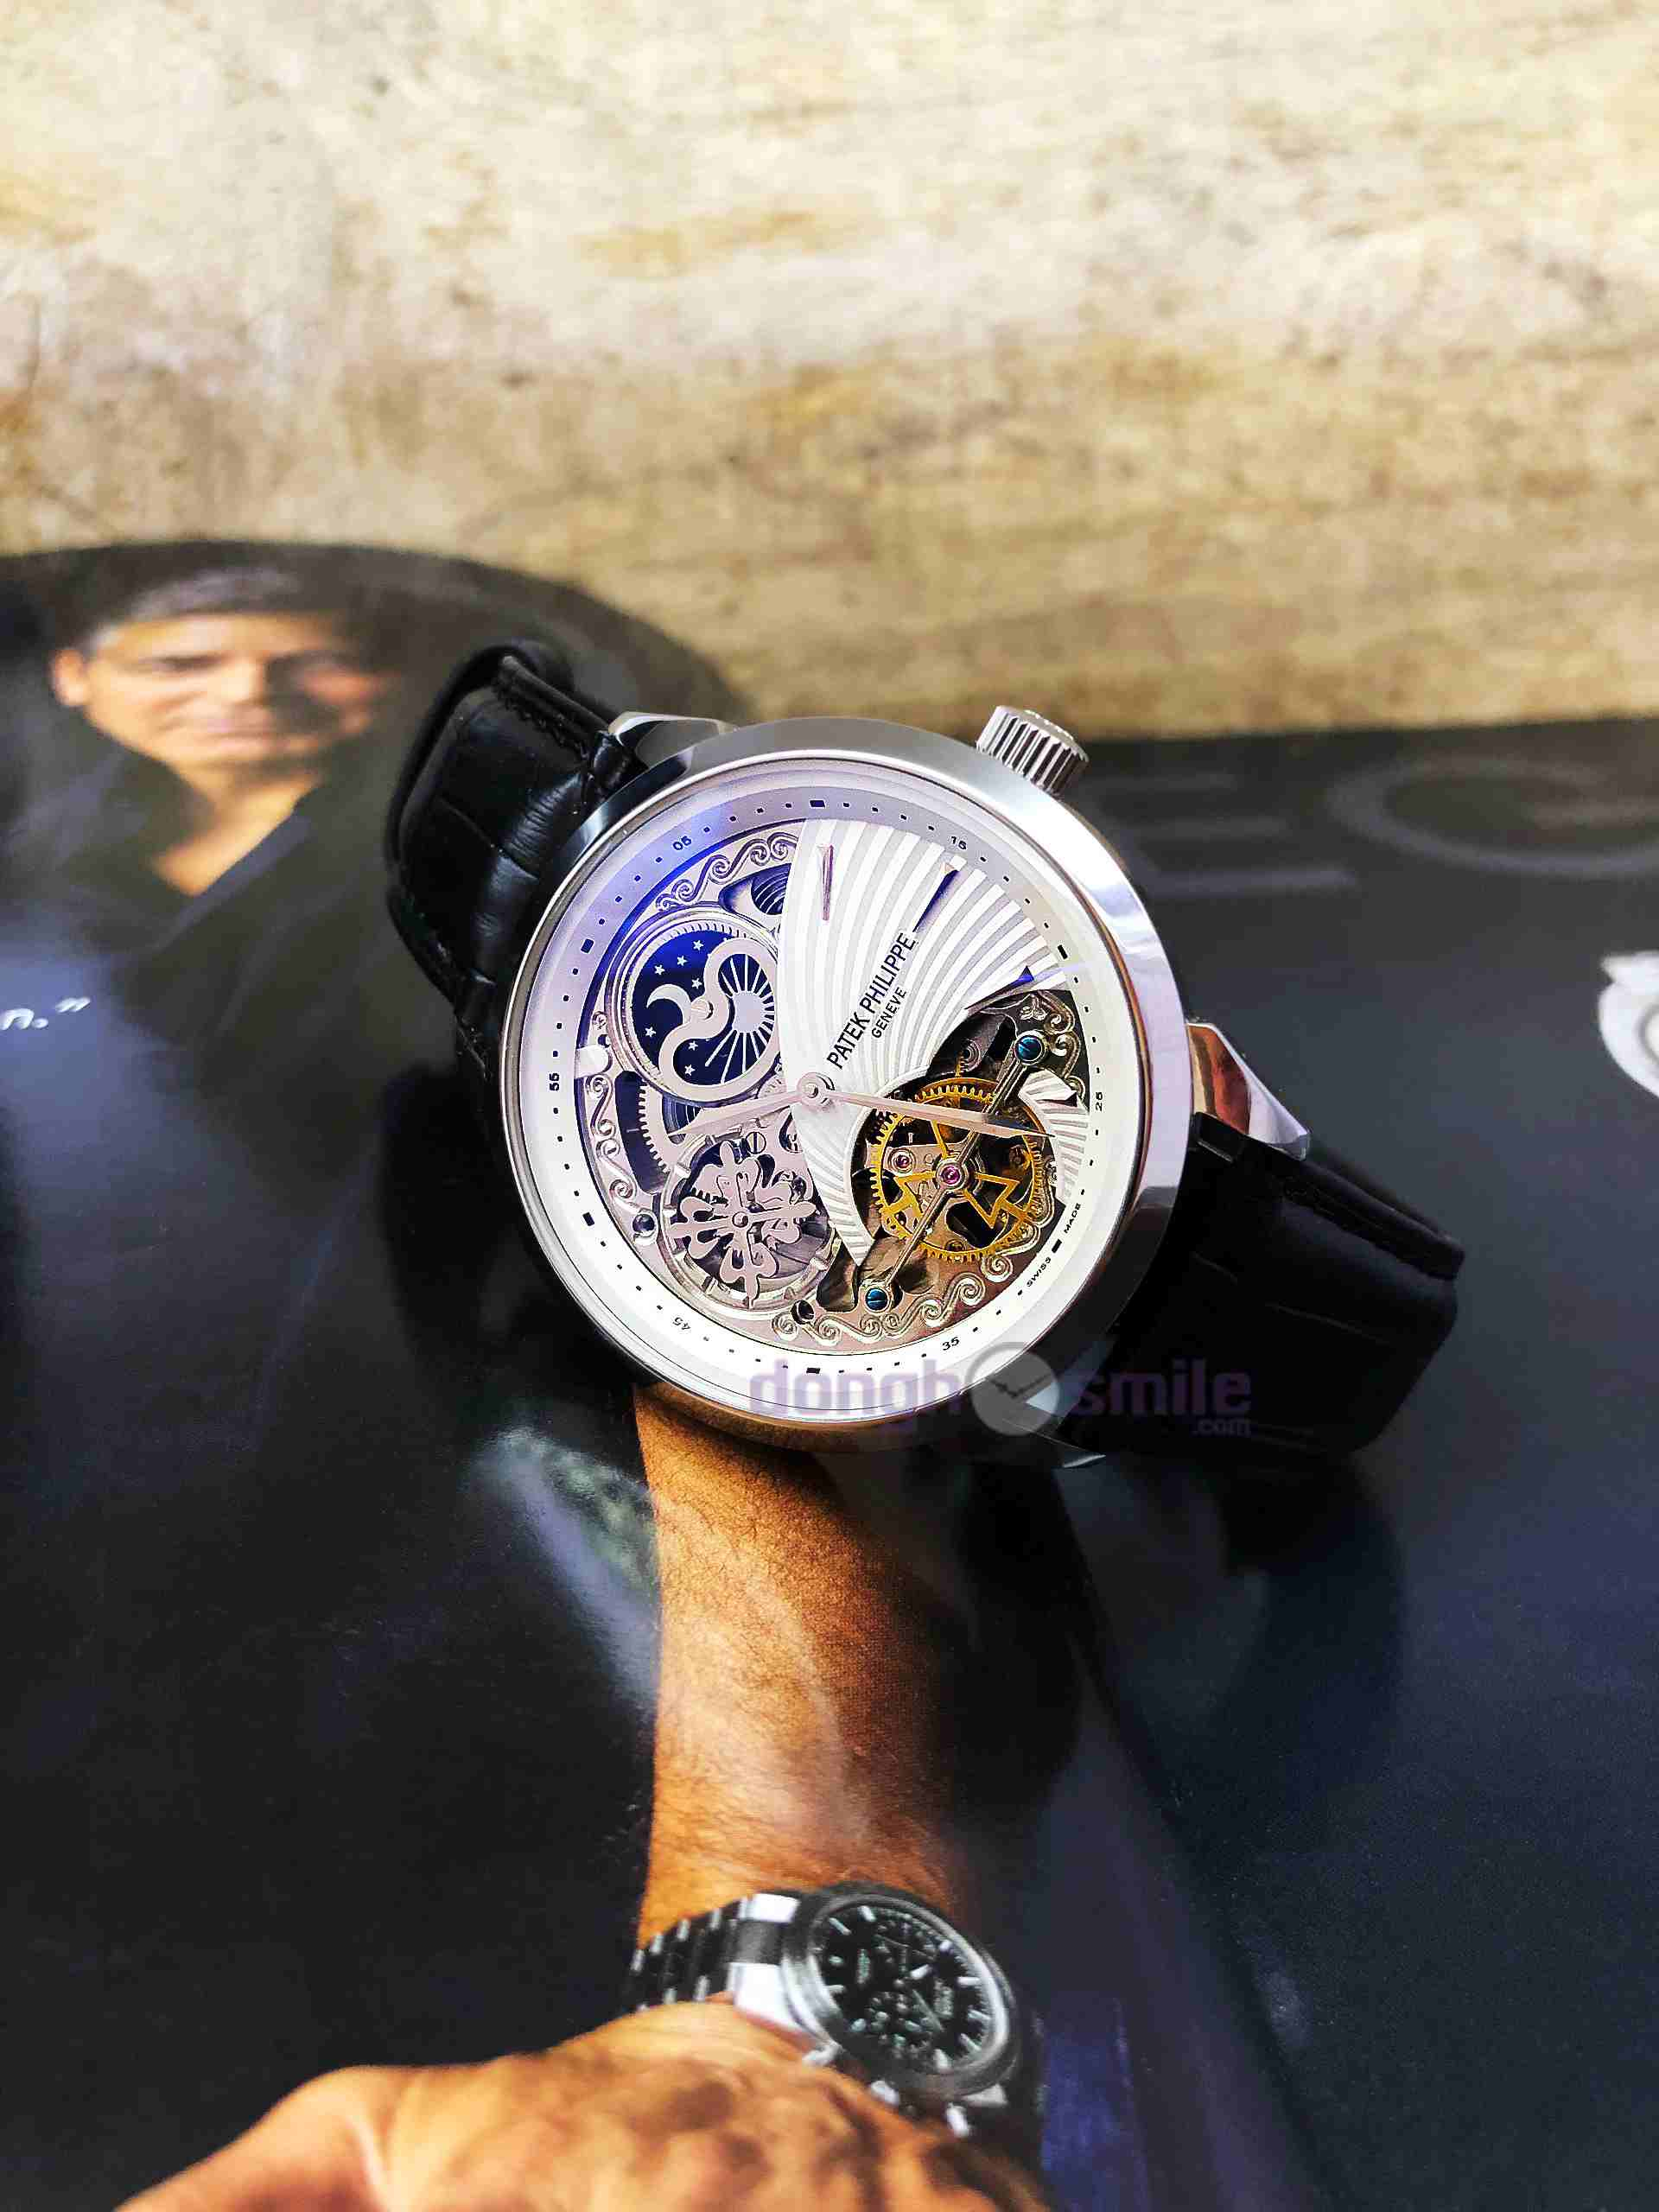 dong-ho-patek-philippe-geneve-gia-tot-a-pp114-6